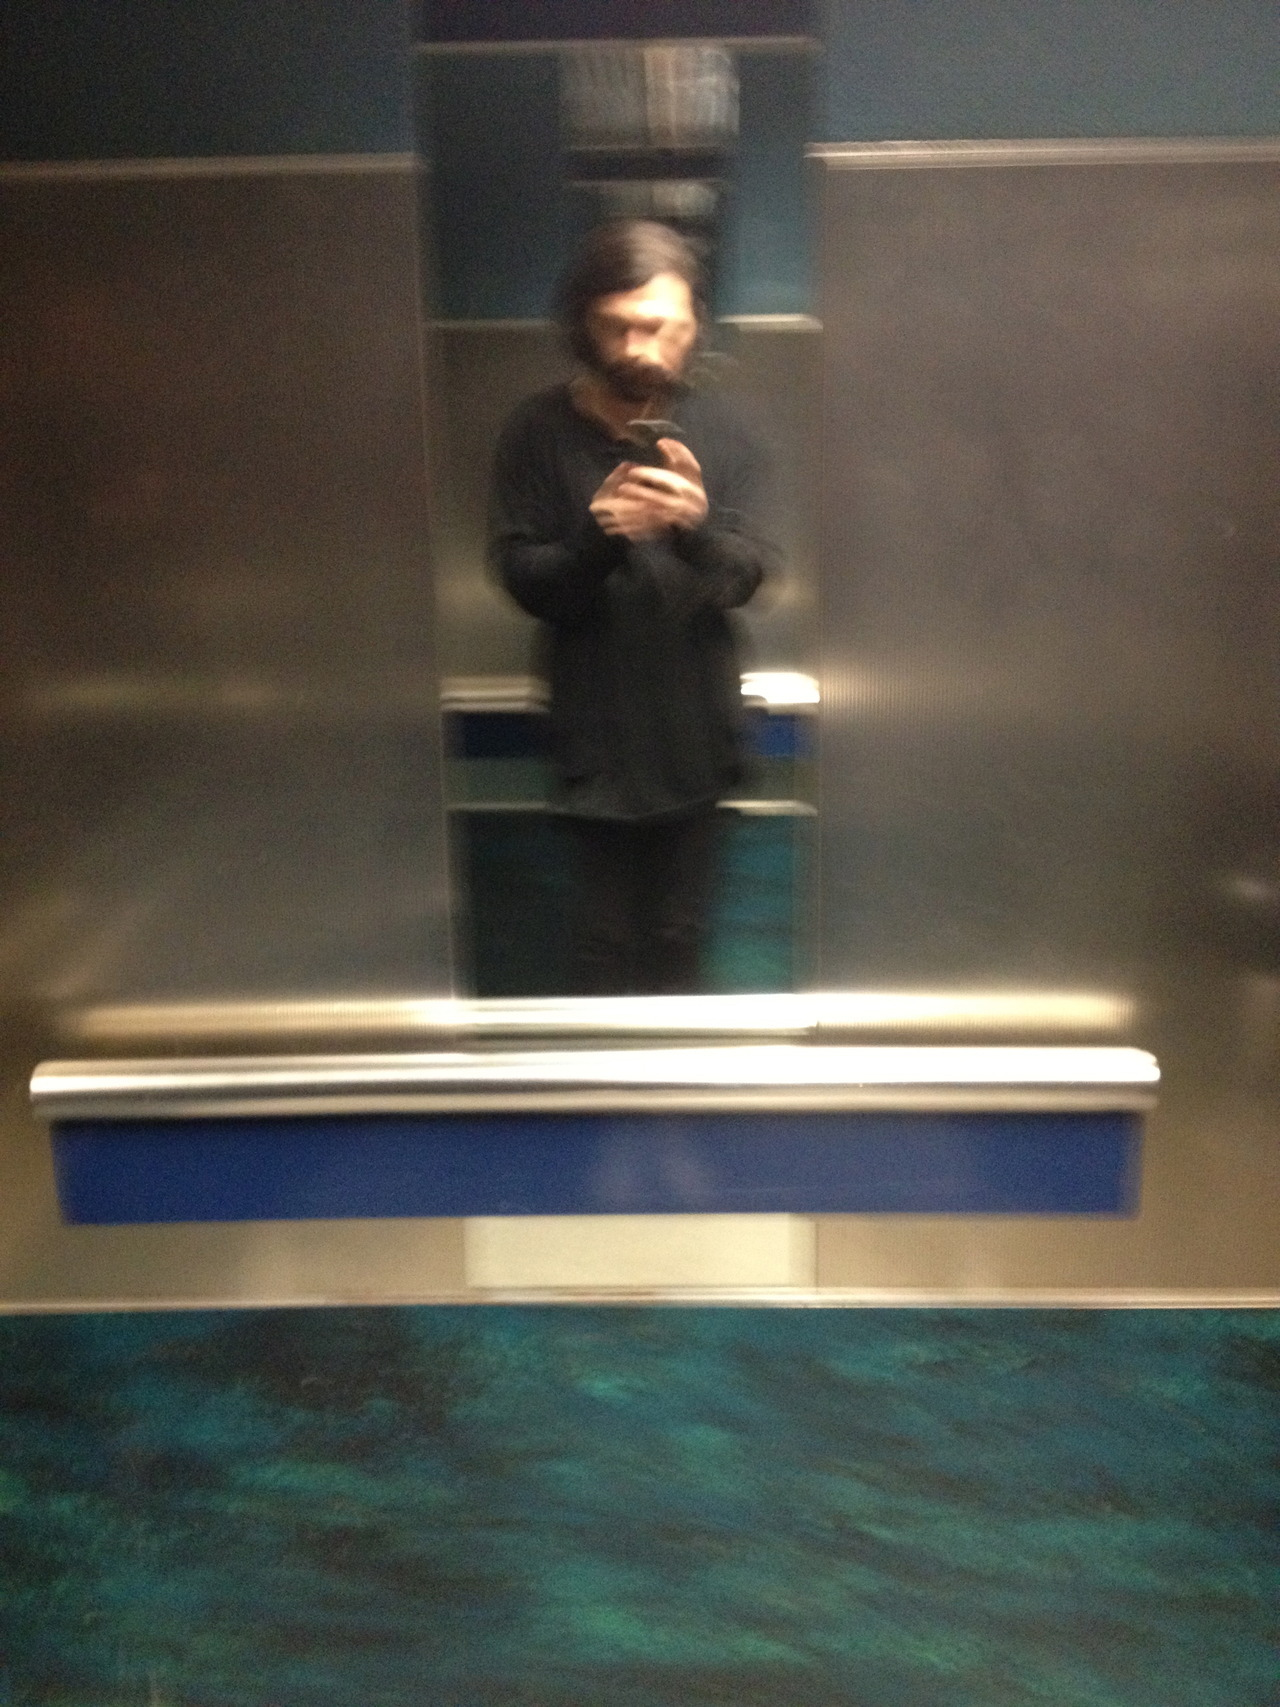 Back in the blurry blue lift. Zambesi over-shirt and under-thing.